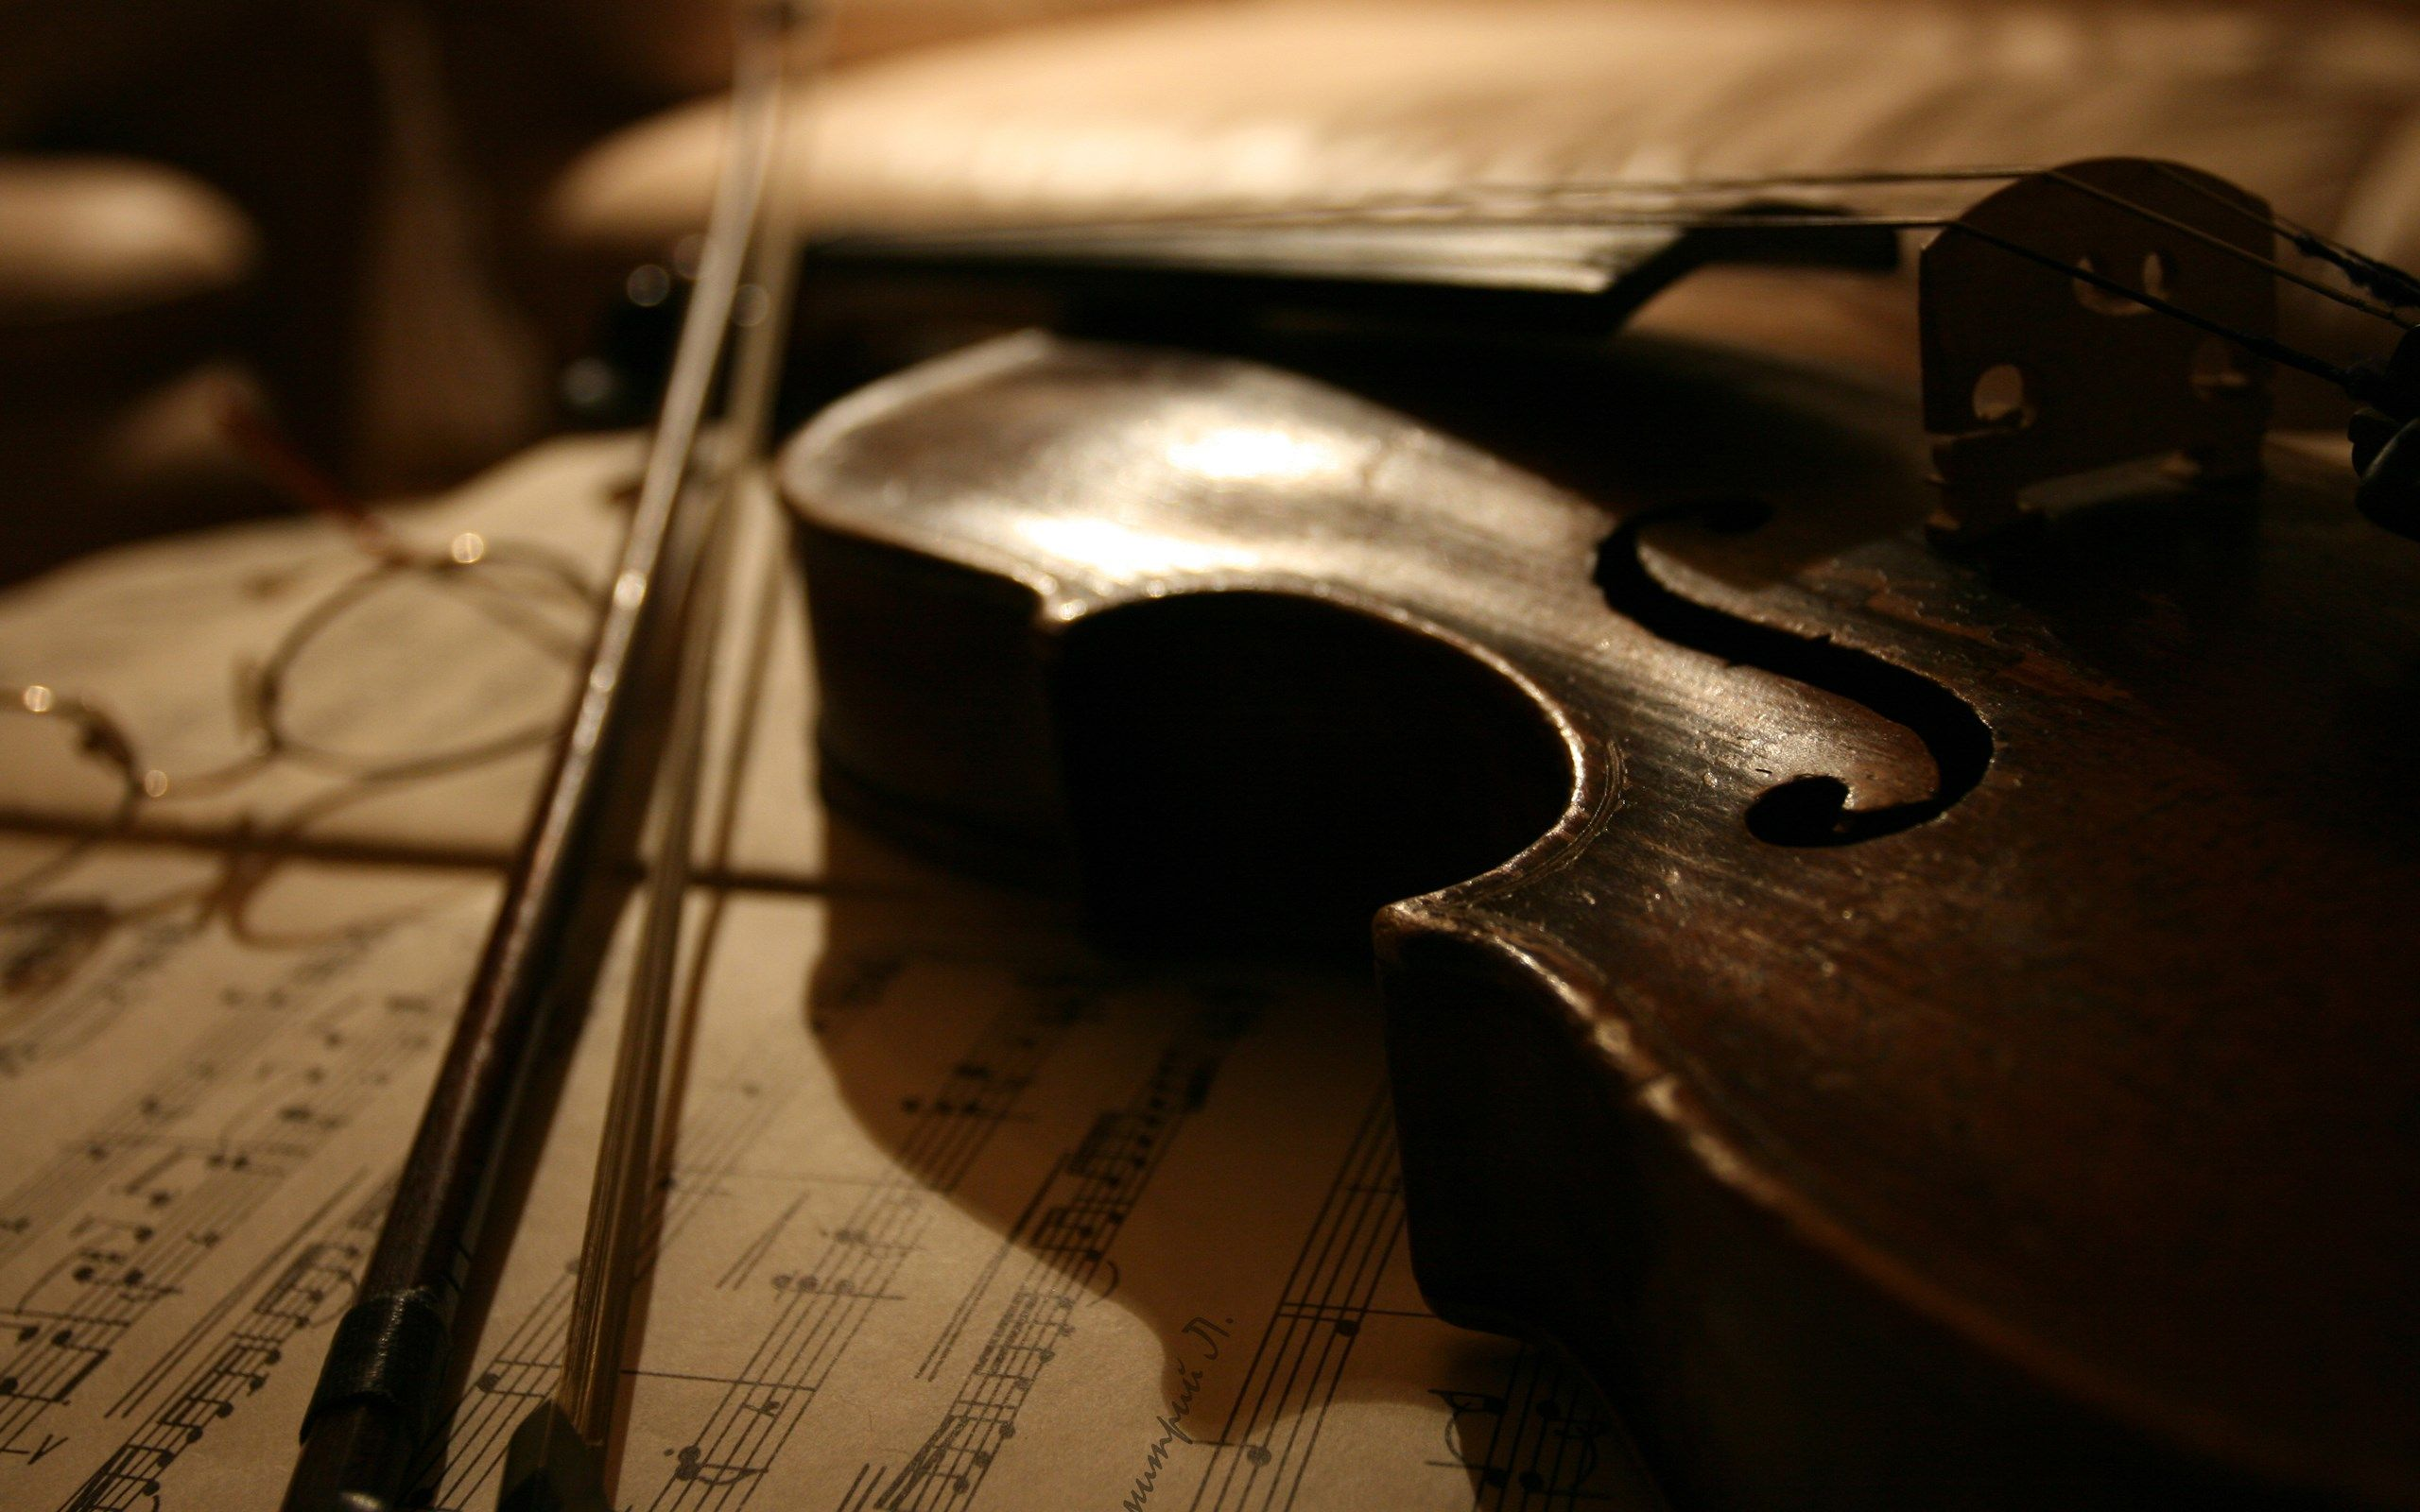 violin hd wallpapers find best latest violin hd wallpapers in hd for your pc desktop background mobile phones